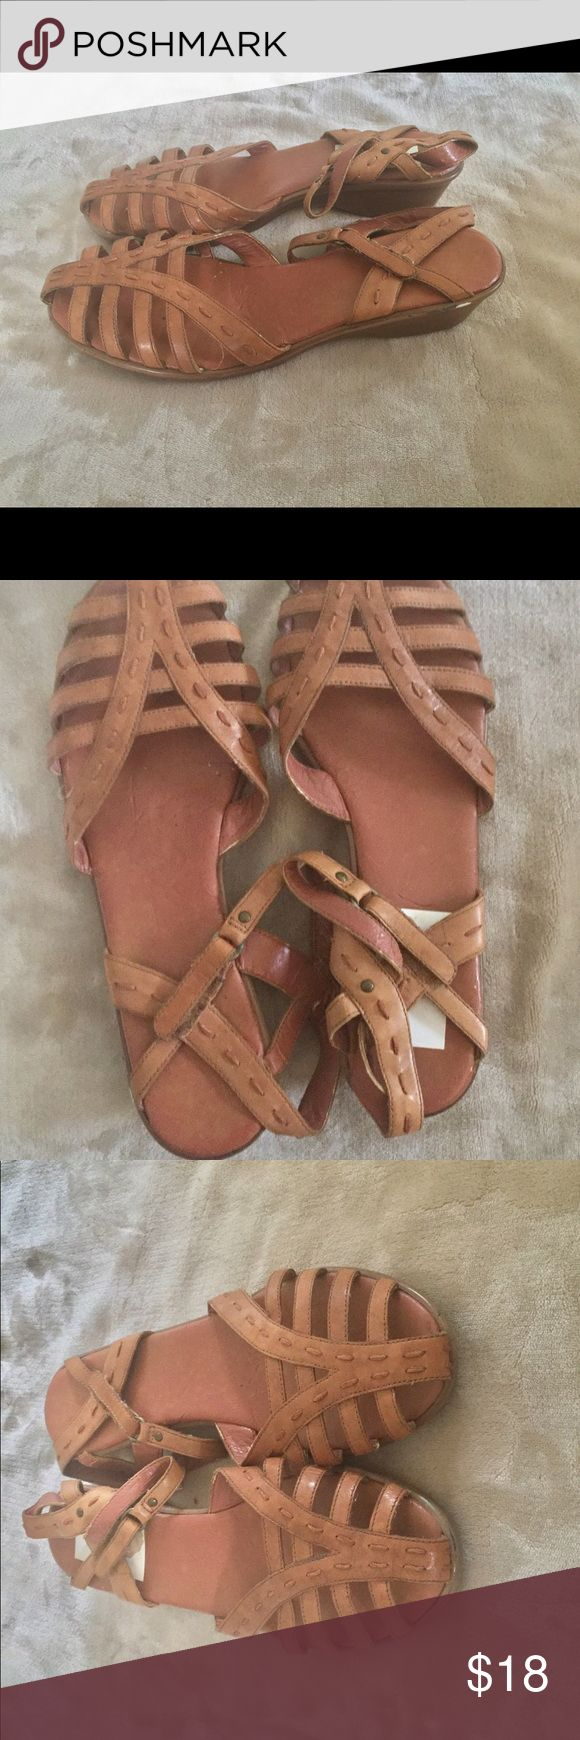 Vintage Sandals Vintage Easy Spirit Sandals. Leather upper approximately 1.5 inch wedge heel. In good condition with signs of some wear. Please review all details and photos. All Items sold as is.  *Model Not Provided  *All items come from a smoke free and pet free home  *Offers considered through offer feature only  ❌No Trades❌ Easy Spirit Shoes Sandals